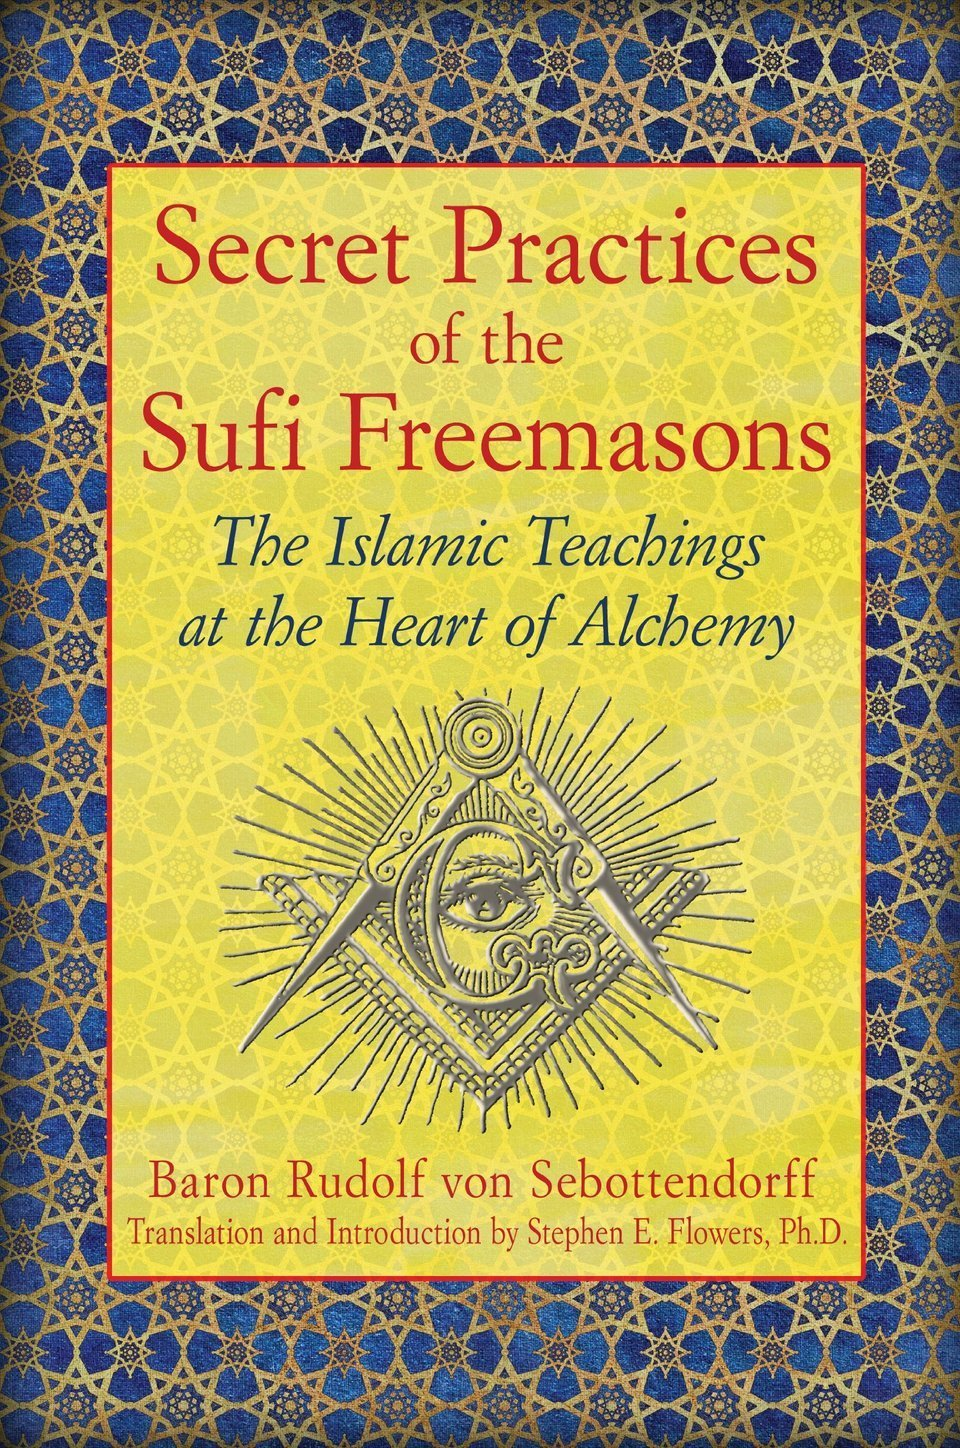 Secret Practices of the Sufi Freemasons: The Islamic Teachings at the Heart of Alchemy  •  by Rudolf von Sebottendorff